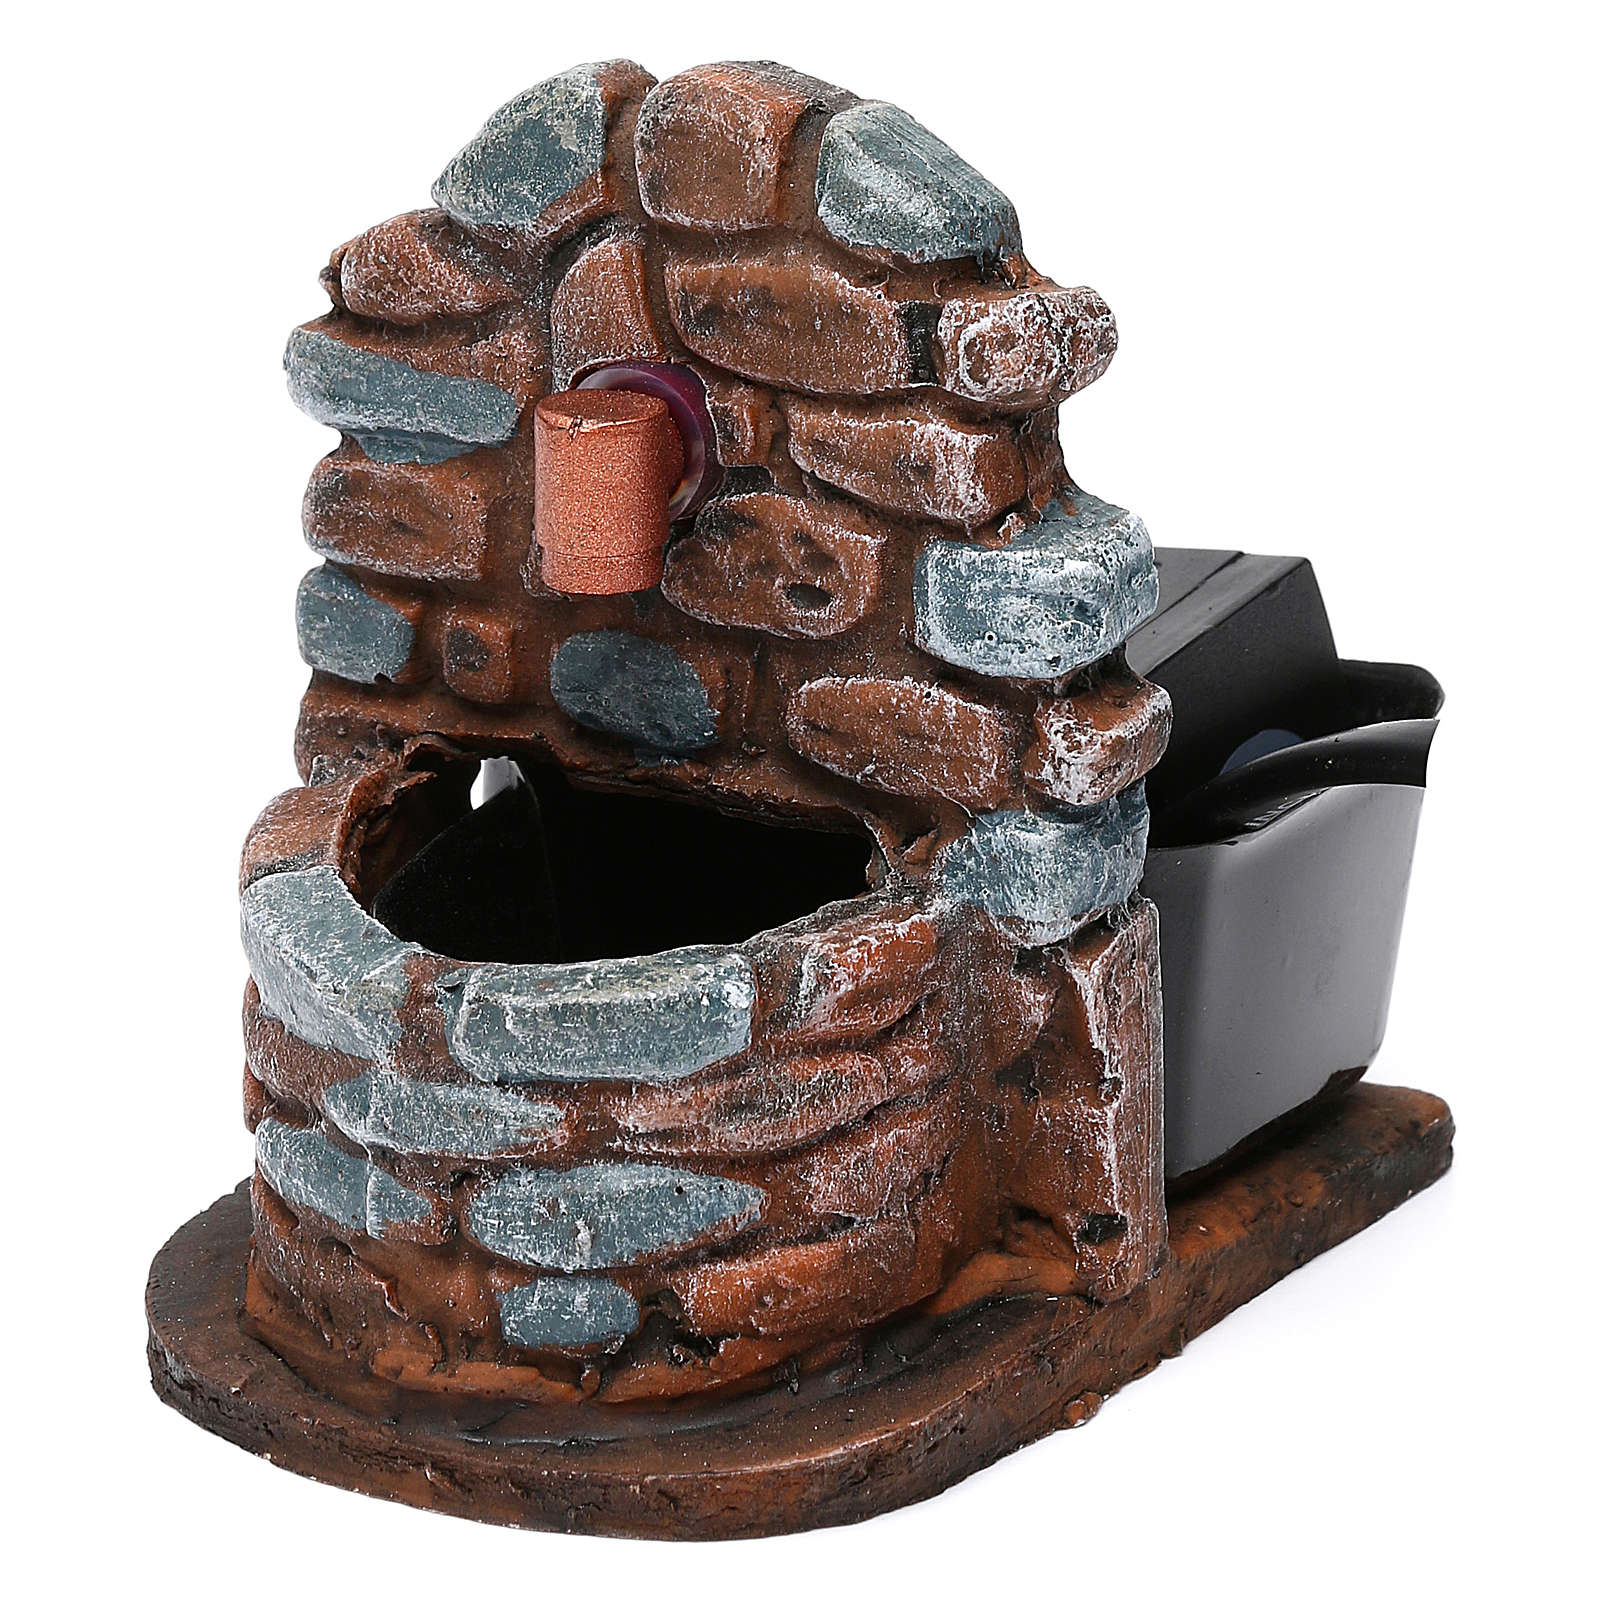 Nativity accessory, water fountain with pump, resin 9x7x10 cm 4